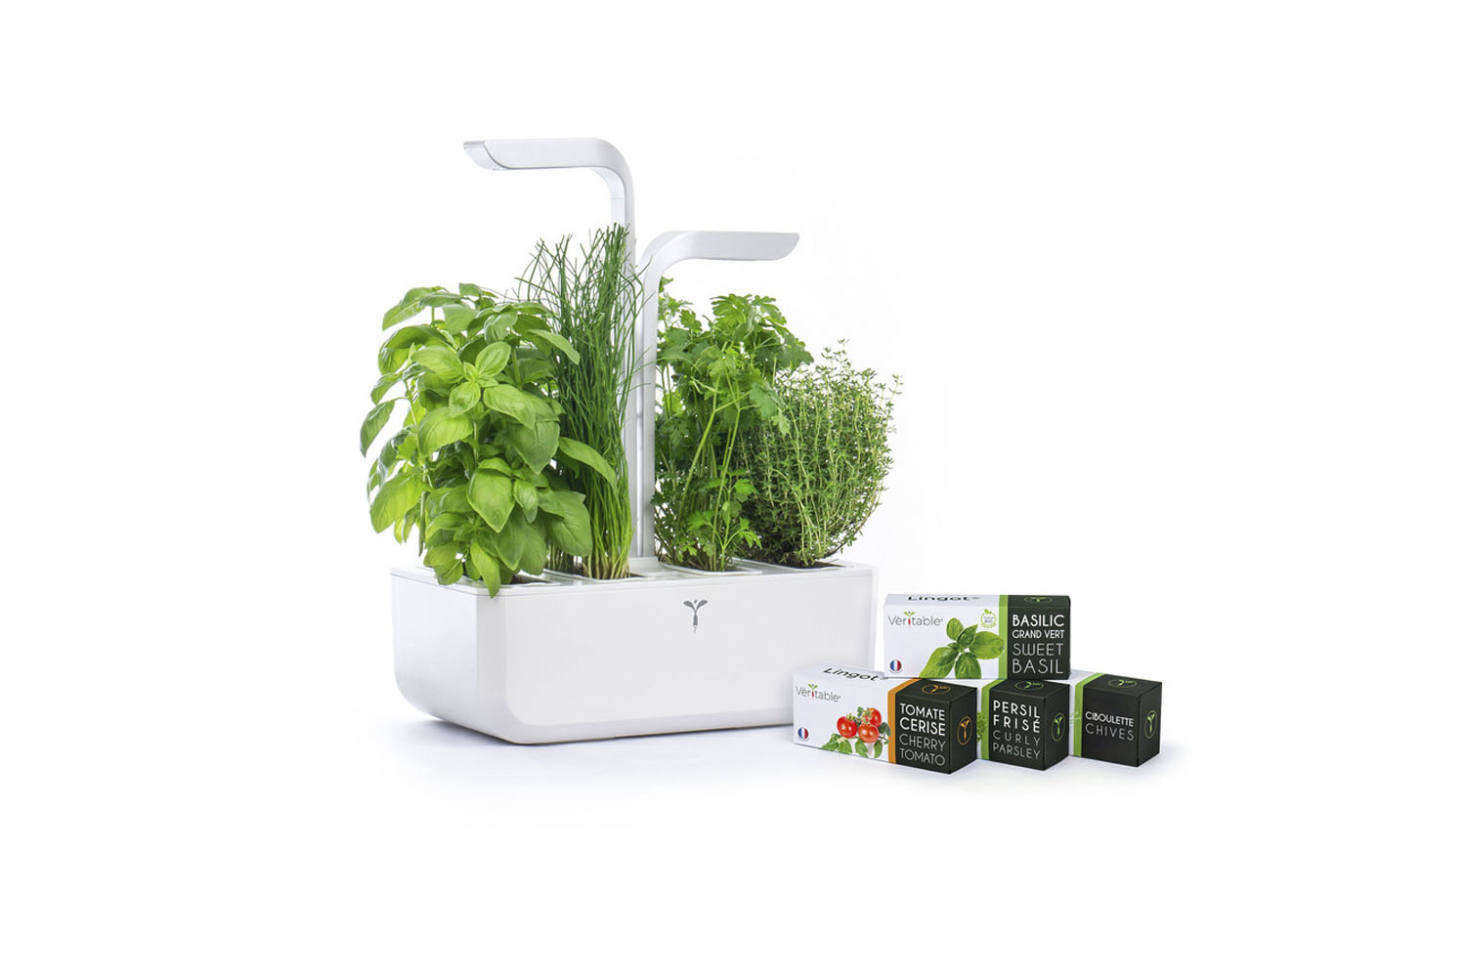 TheClassic Veritable Gardenis powered by an LED light and self-irrigates for up to three weeks. The kit comes with seeds to grow chives, cherry tomatoes, curly parsley, and basil; $0 through Goop. For more like this, see our post Easy Pieces: High Tech Herb Growing Kits.